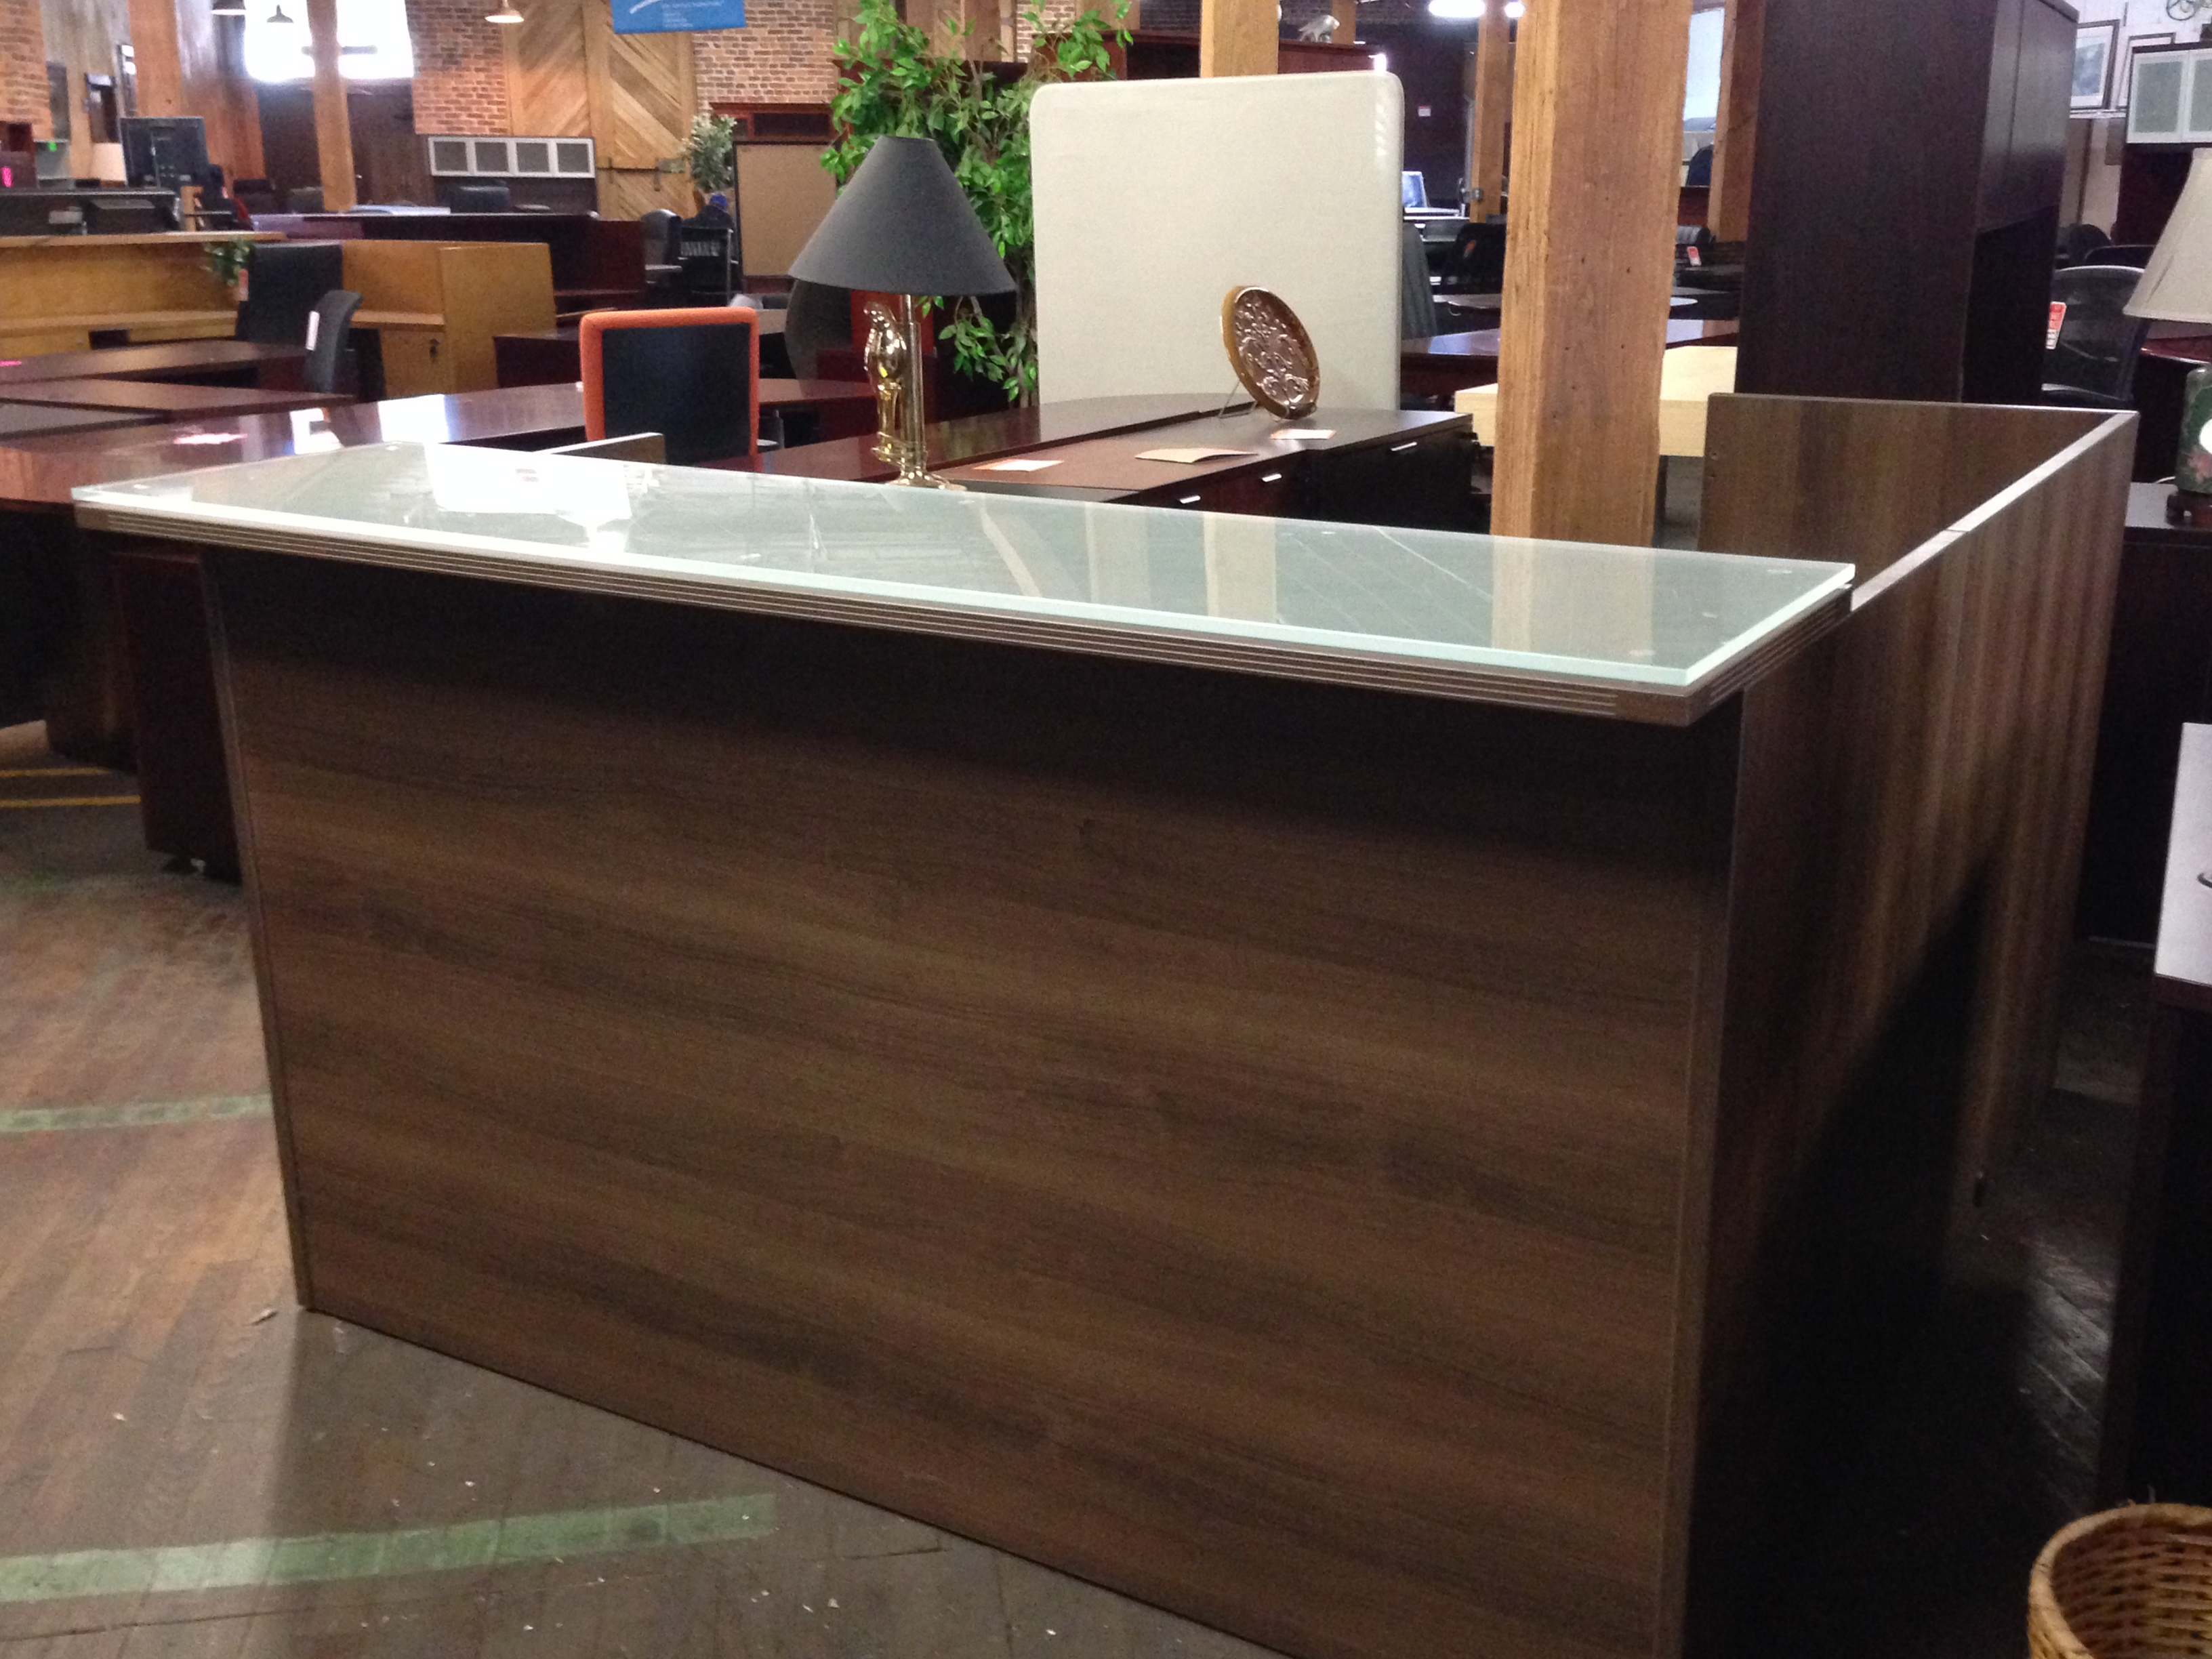 l sumptuous sweet furniture desks office large solutions sale shaped inspiration for kitchen inc counter used desk